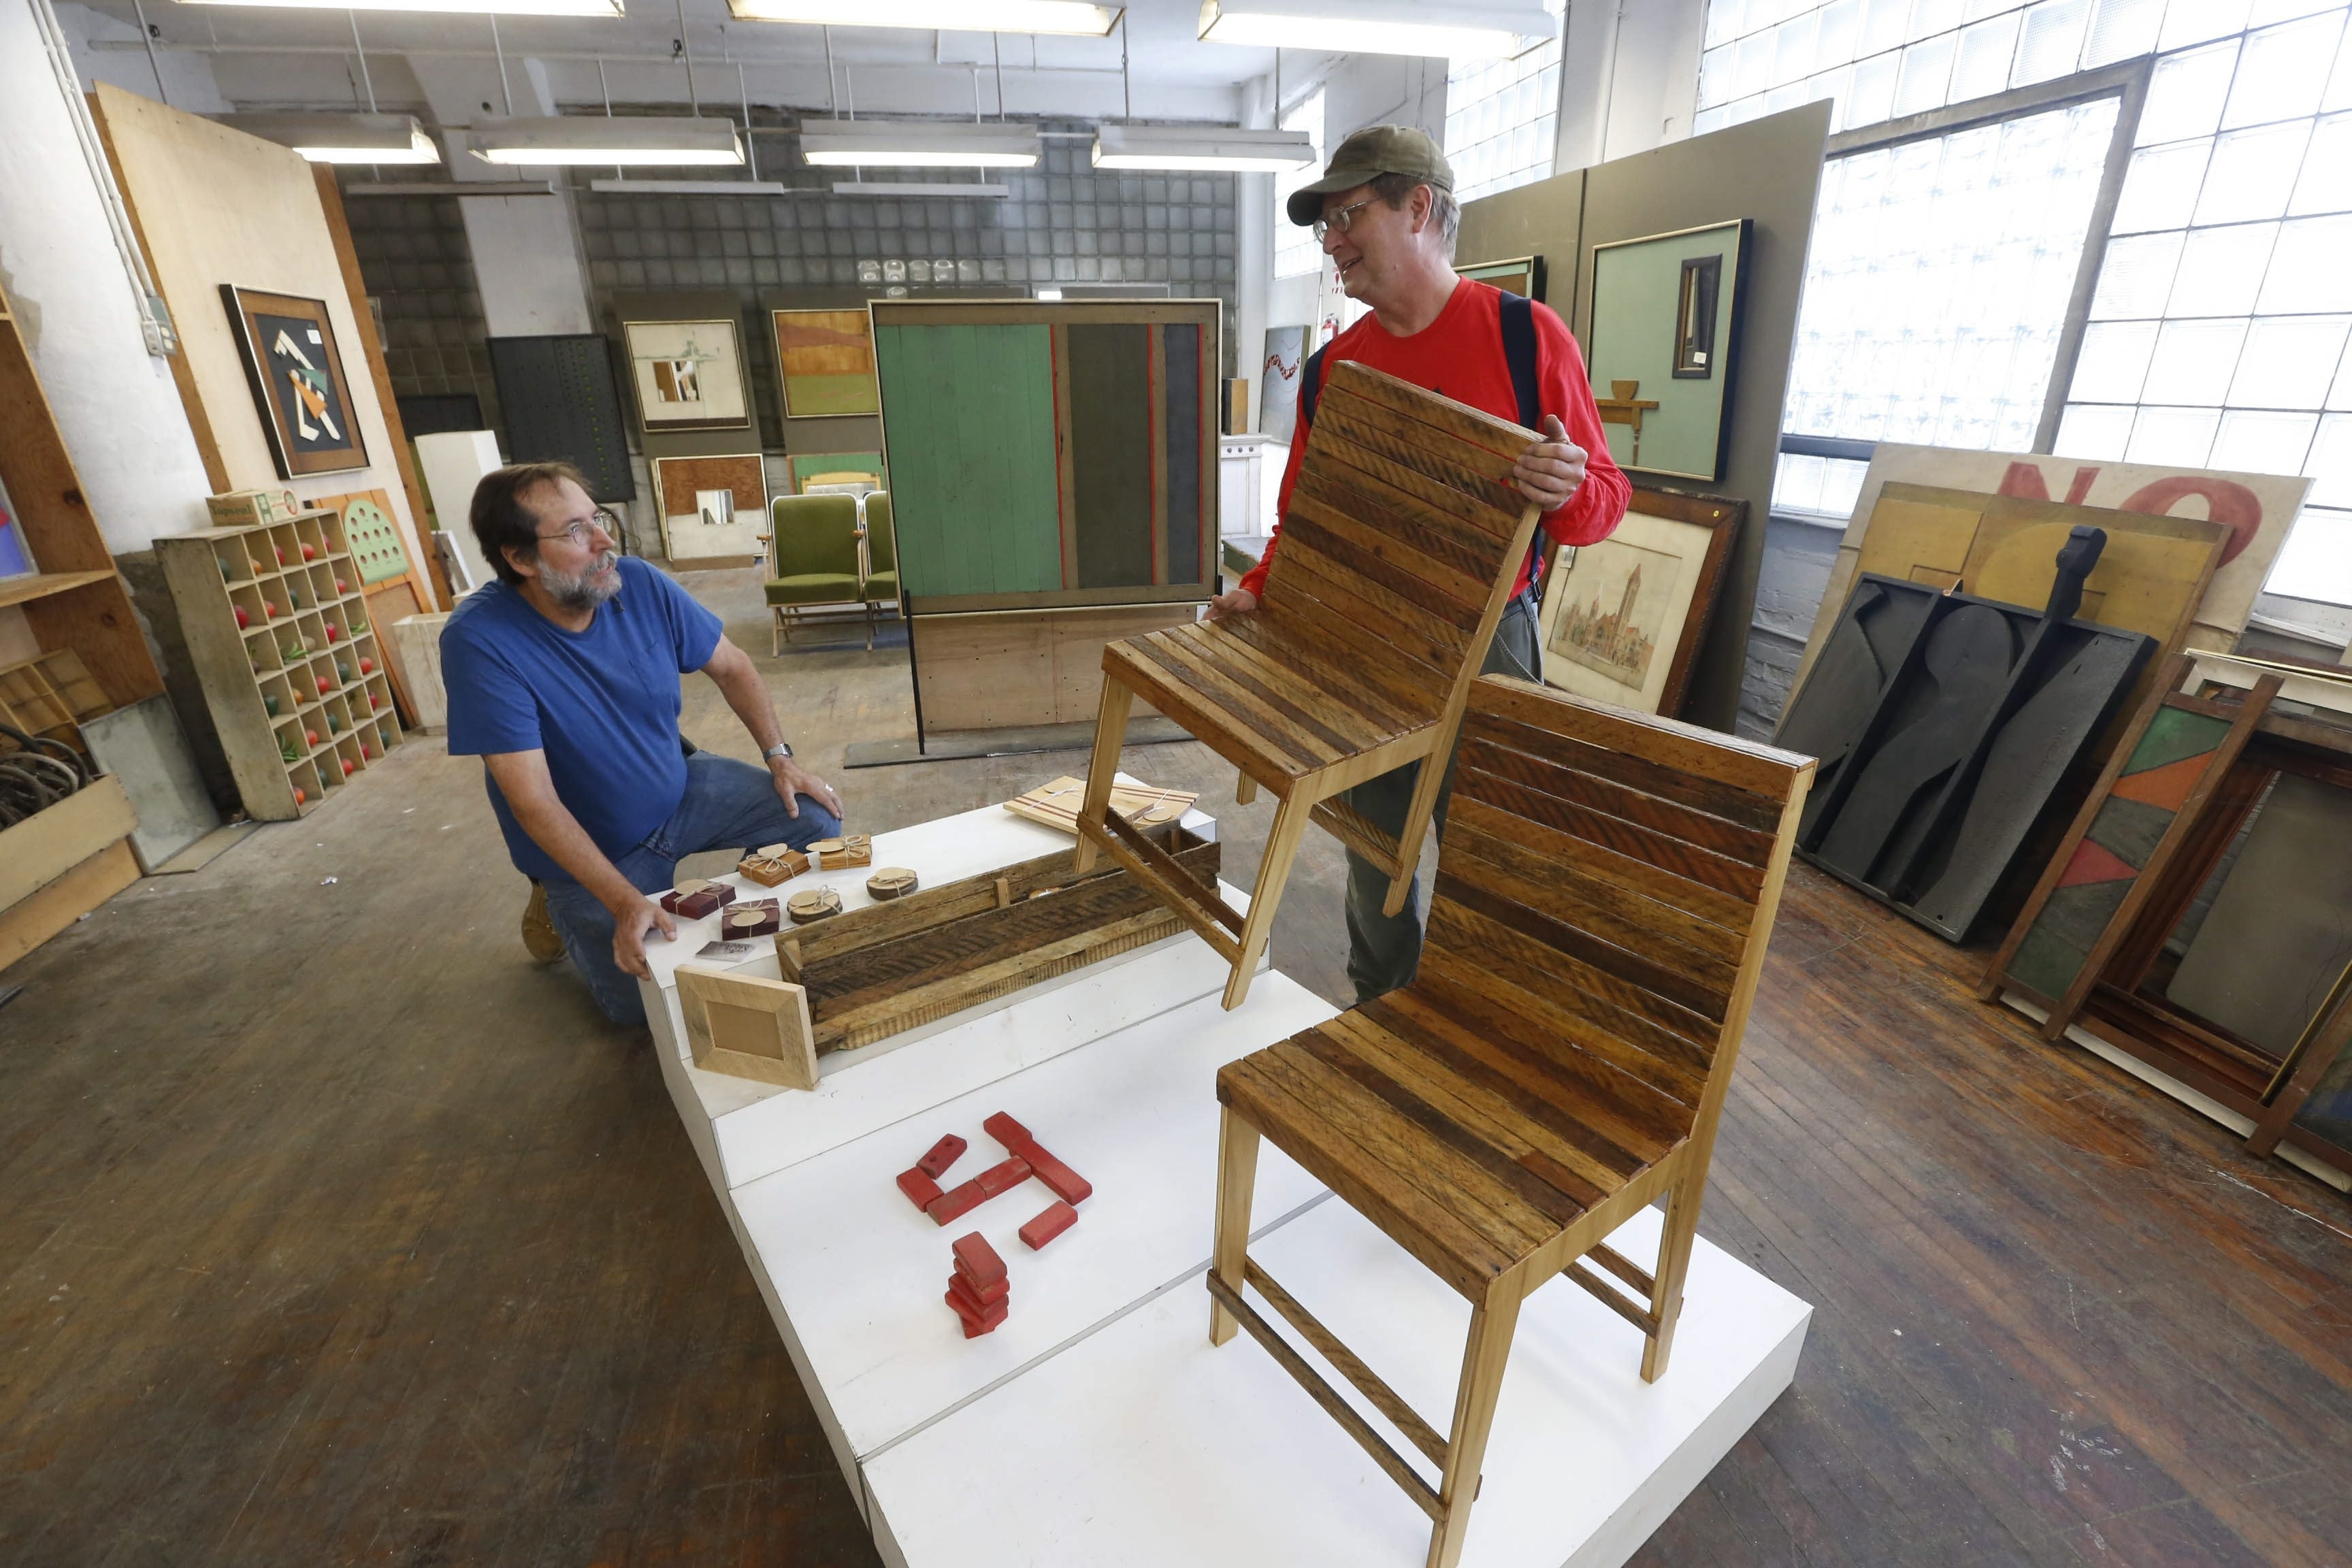 George Apfel, left, and Kevin Hayes arrange recycled art and furniture created by artisan Shawn Faulkner at the new ReUse Action store at 980 Northampton St. in the city's Fillmore section, near the Milk-Bone factory. It's being called Guild @ 980.